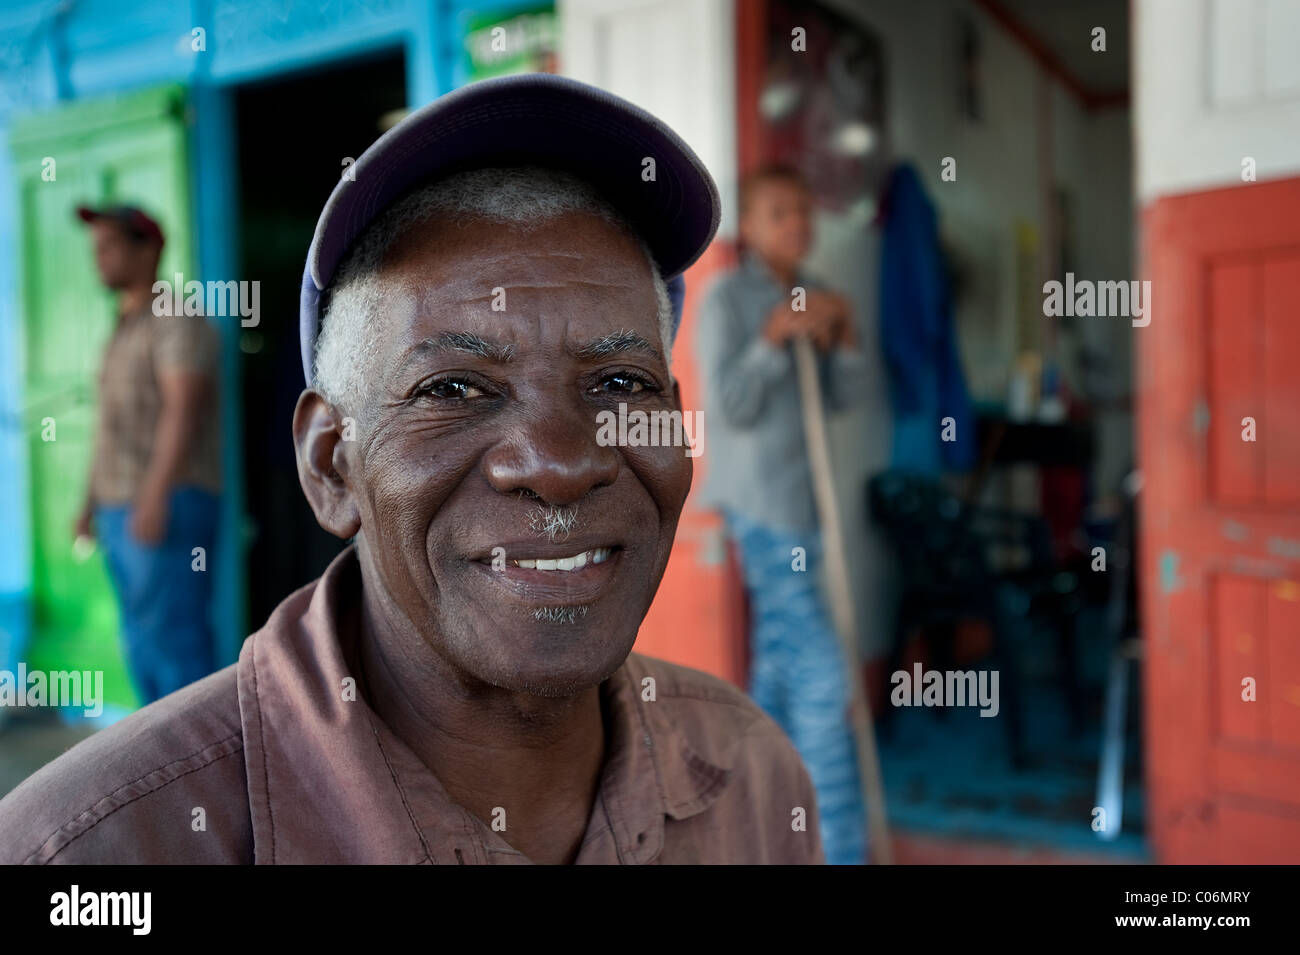 Local trader, Otrabanda, Dominican Republic - Stock Image